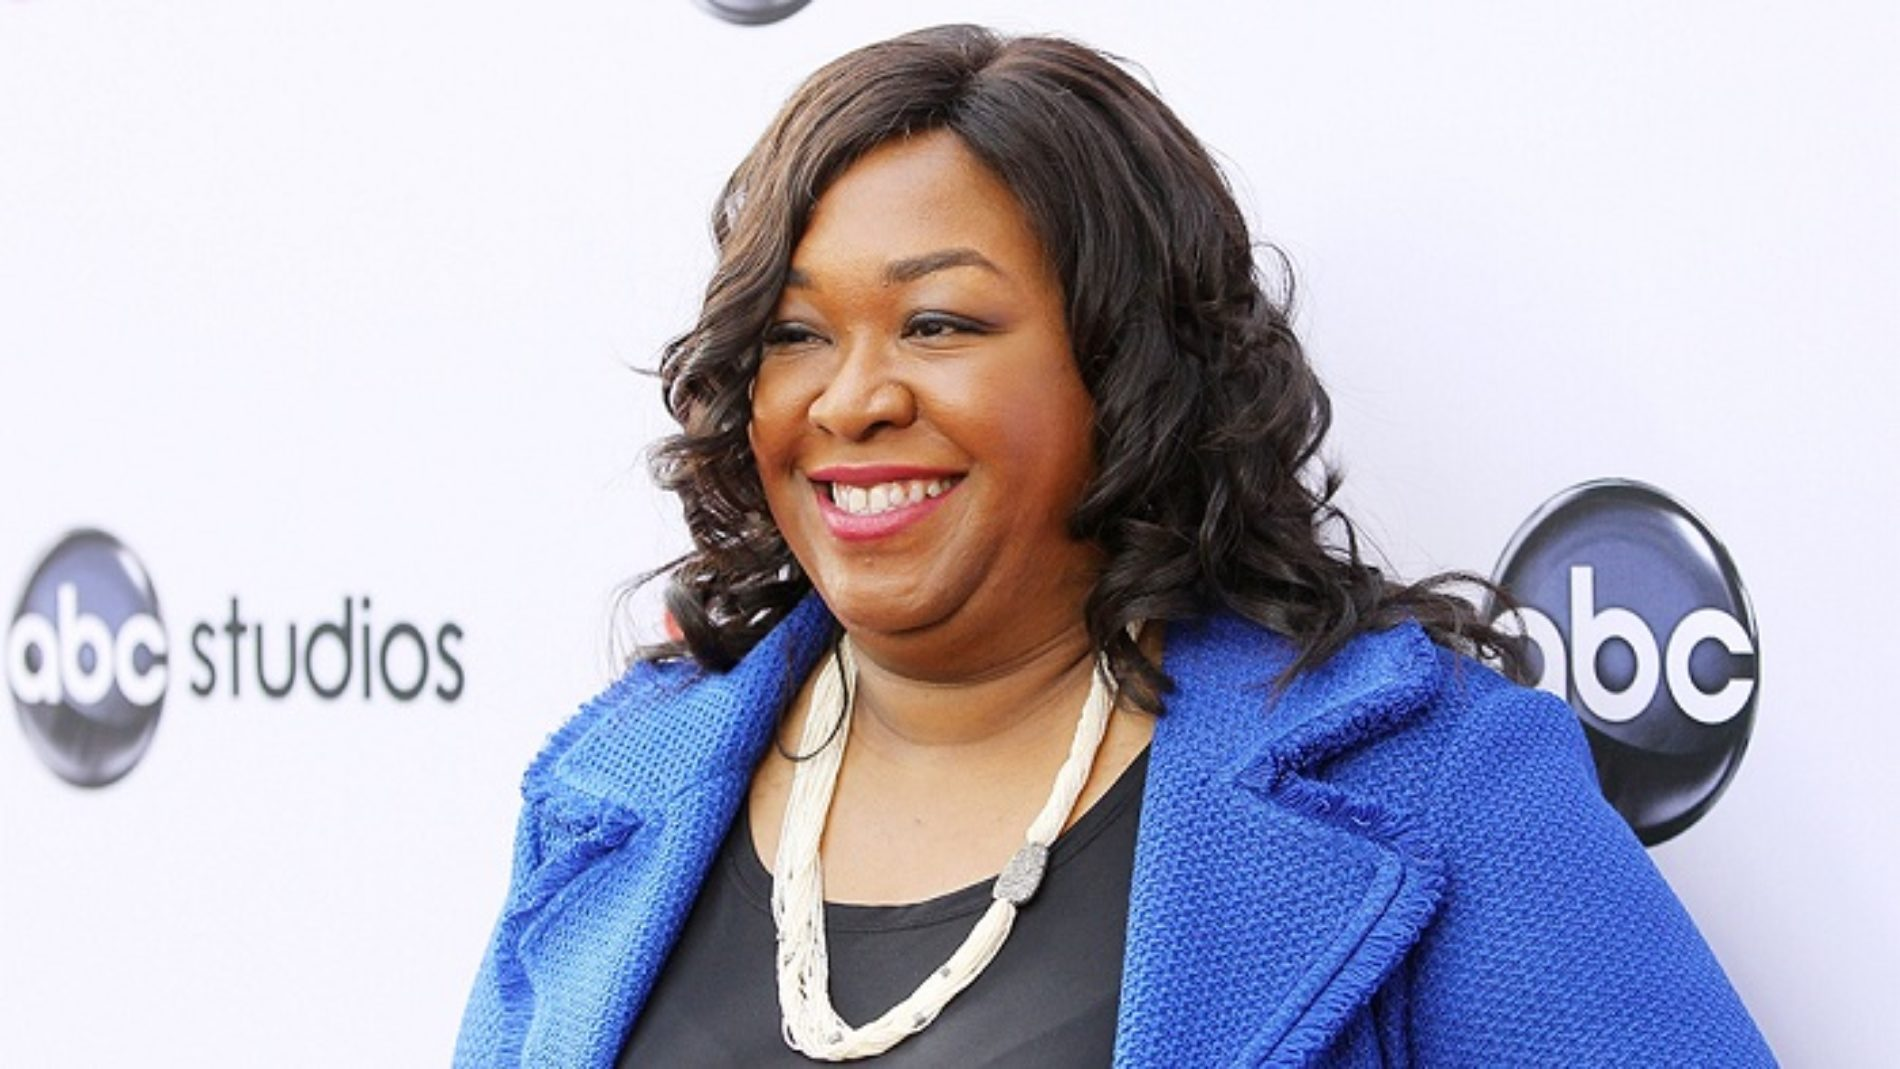 The Shonda Rhimes agenda: 'Normalizing' diversity with Women, LGBTQ and People of Color